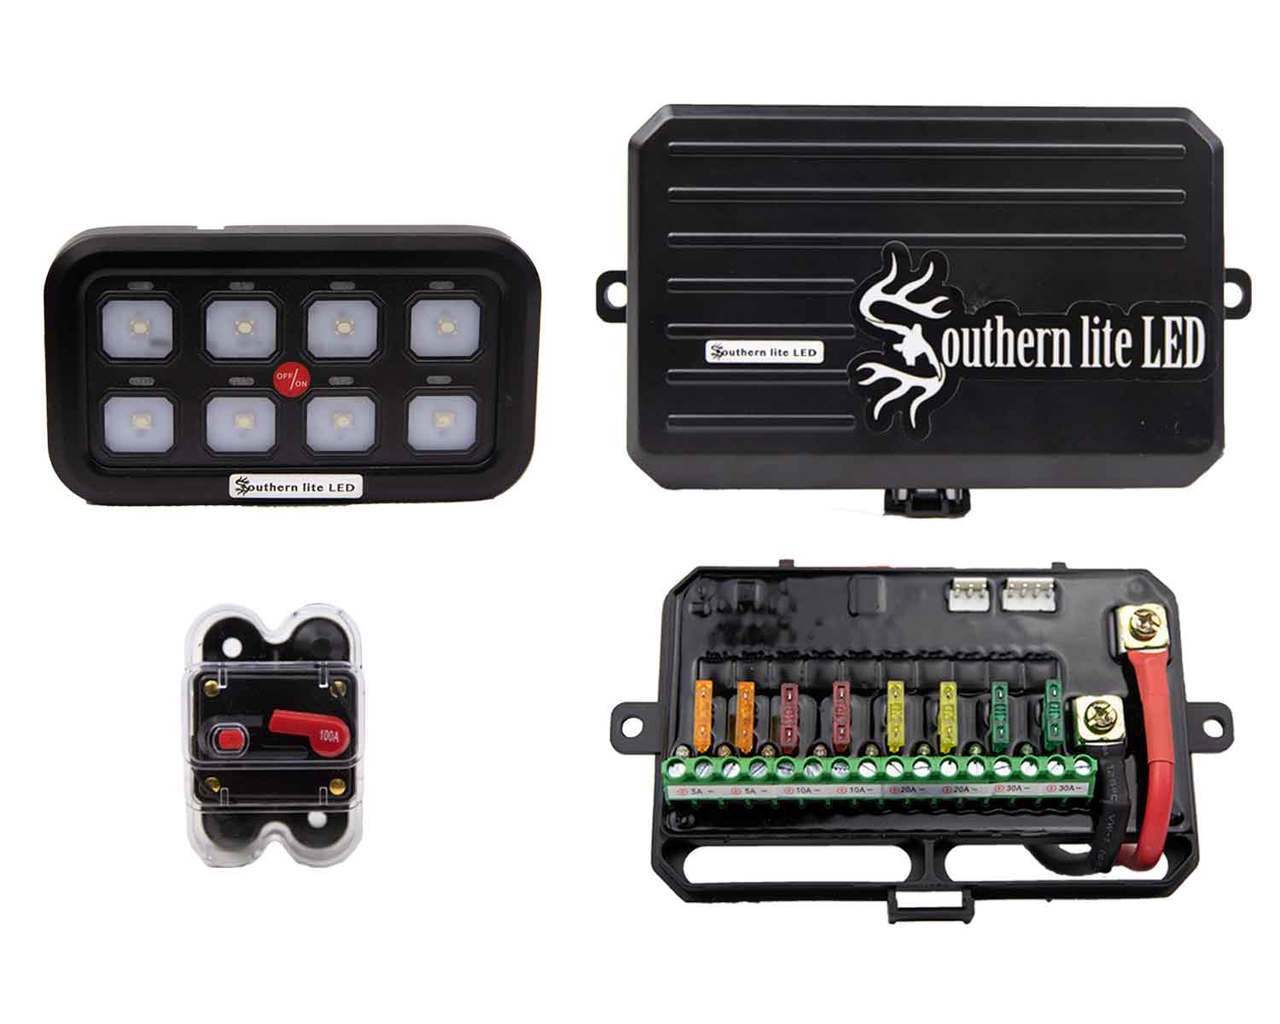 ULTIMATE MARINE LED WIRING AND SWITCH SYSTEM (940 Watts Max)